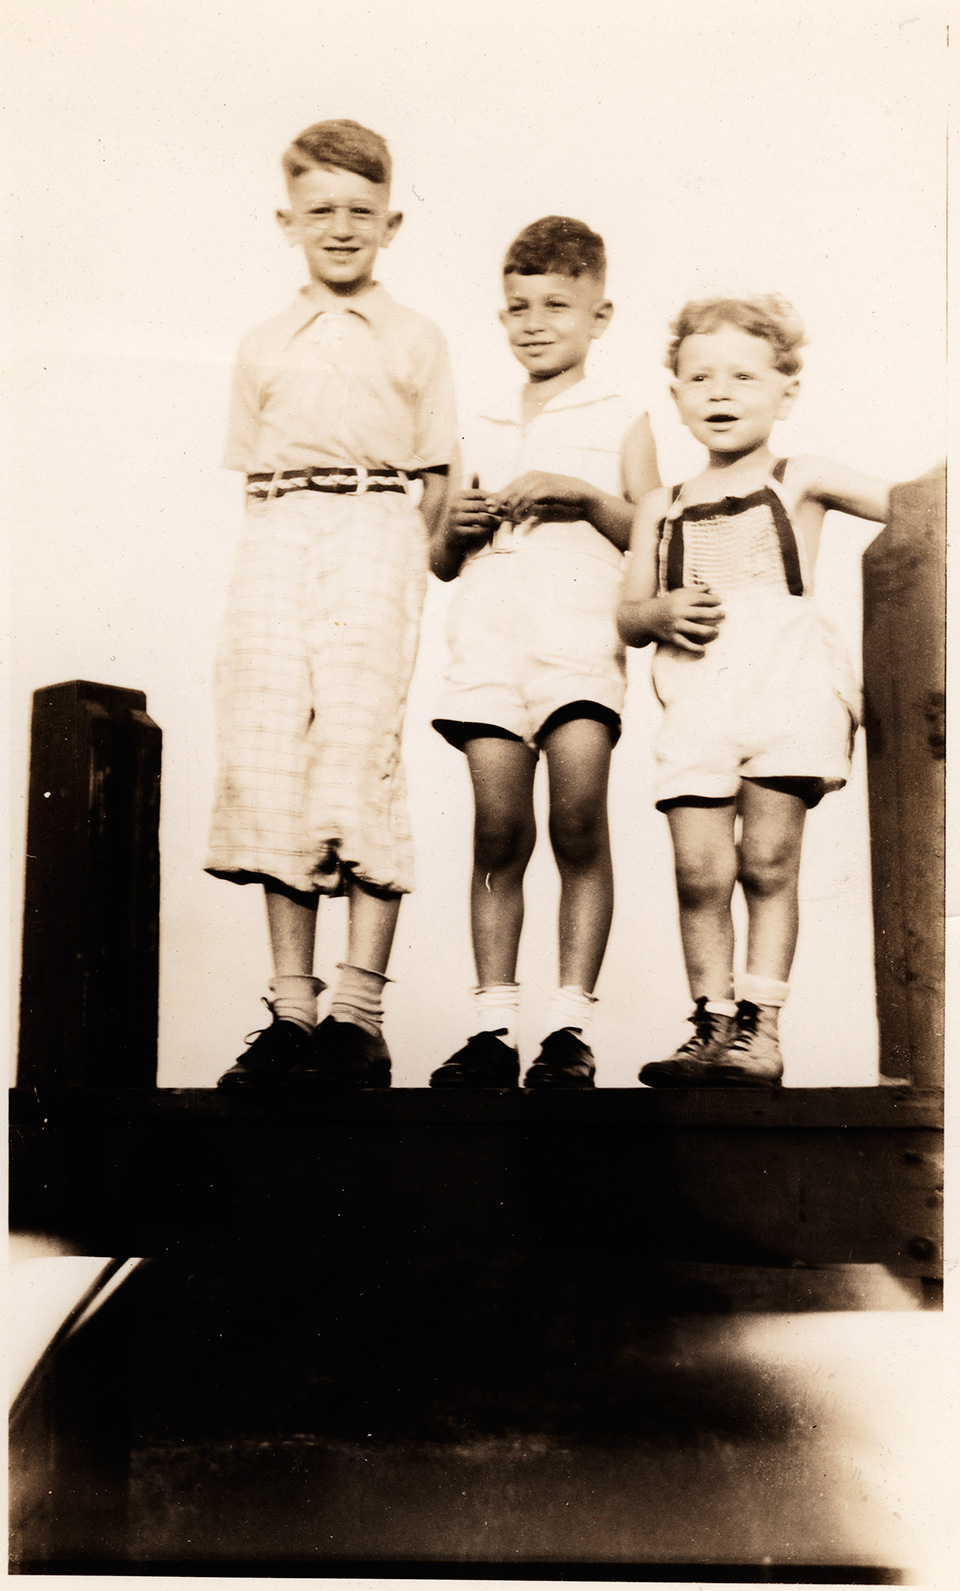 R.S. Mendelsohn as a child, standing atop a [ledge] with his younger brothers Mark and Allan beside him.